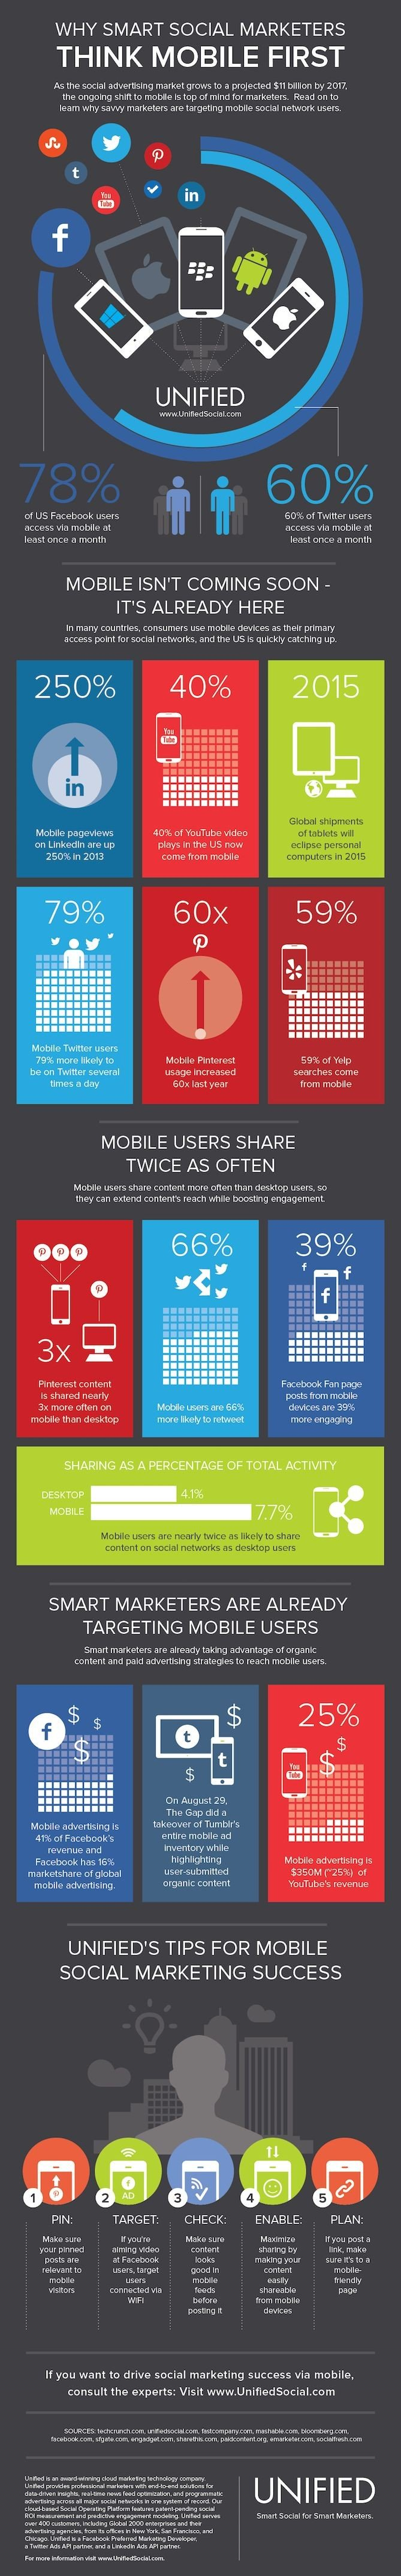 Why smart #Social_Media marketers think mobile first #SMM #Infographic